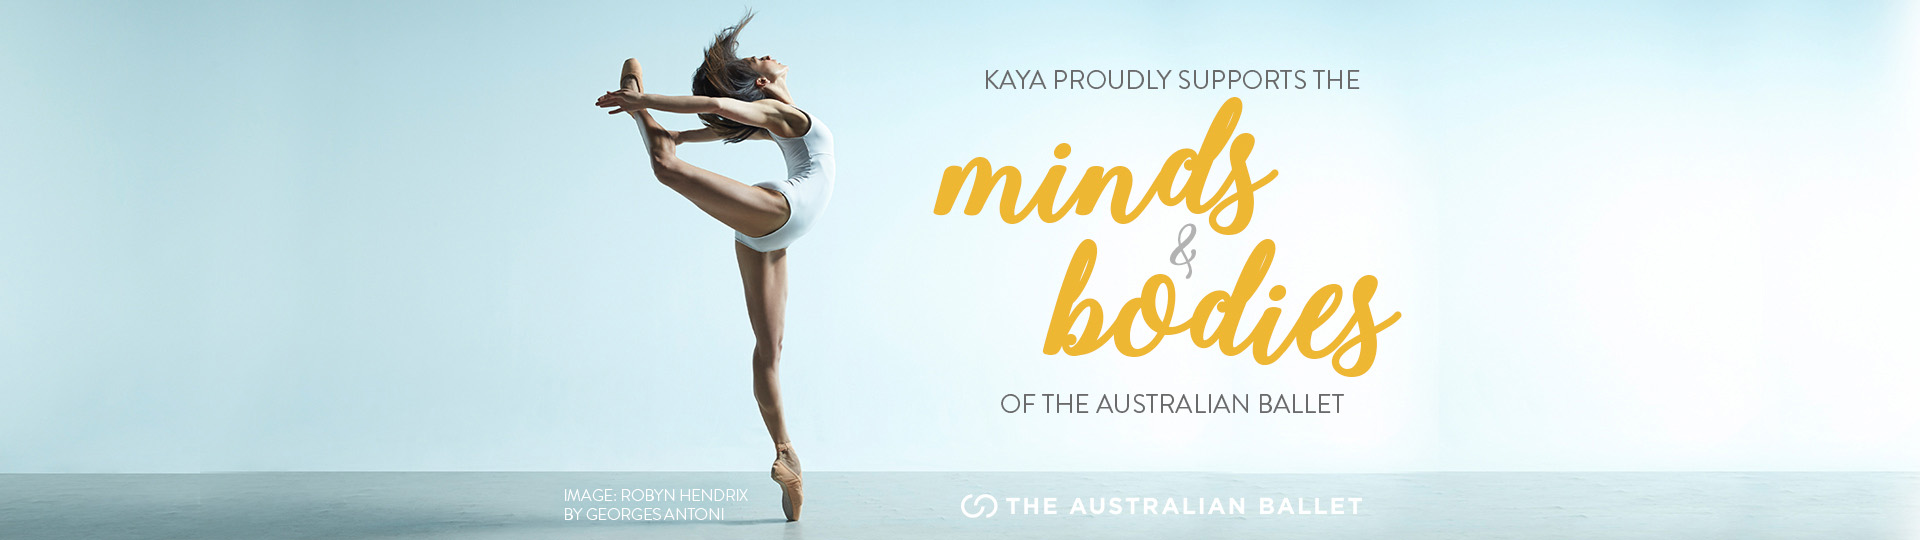 KayaHealth_Ballet_Slider 2